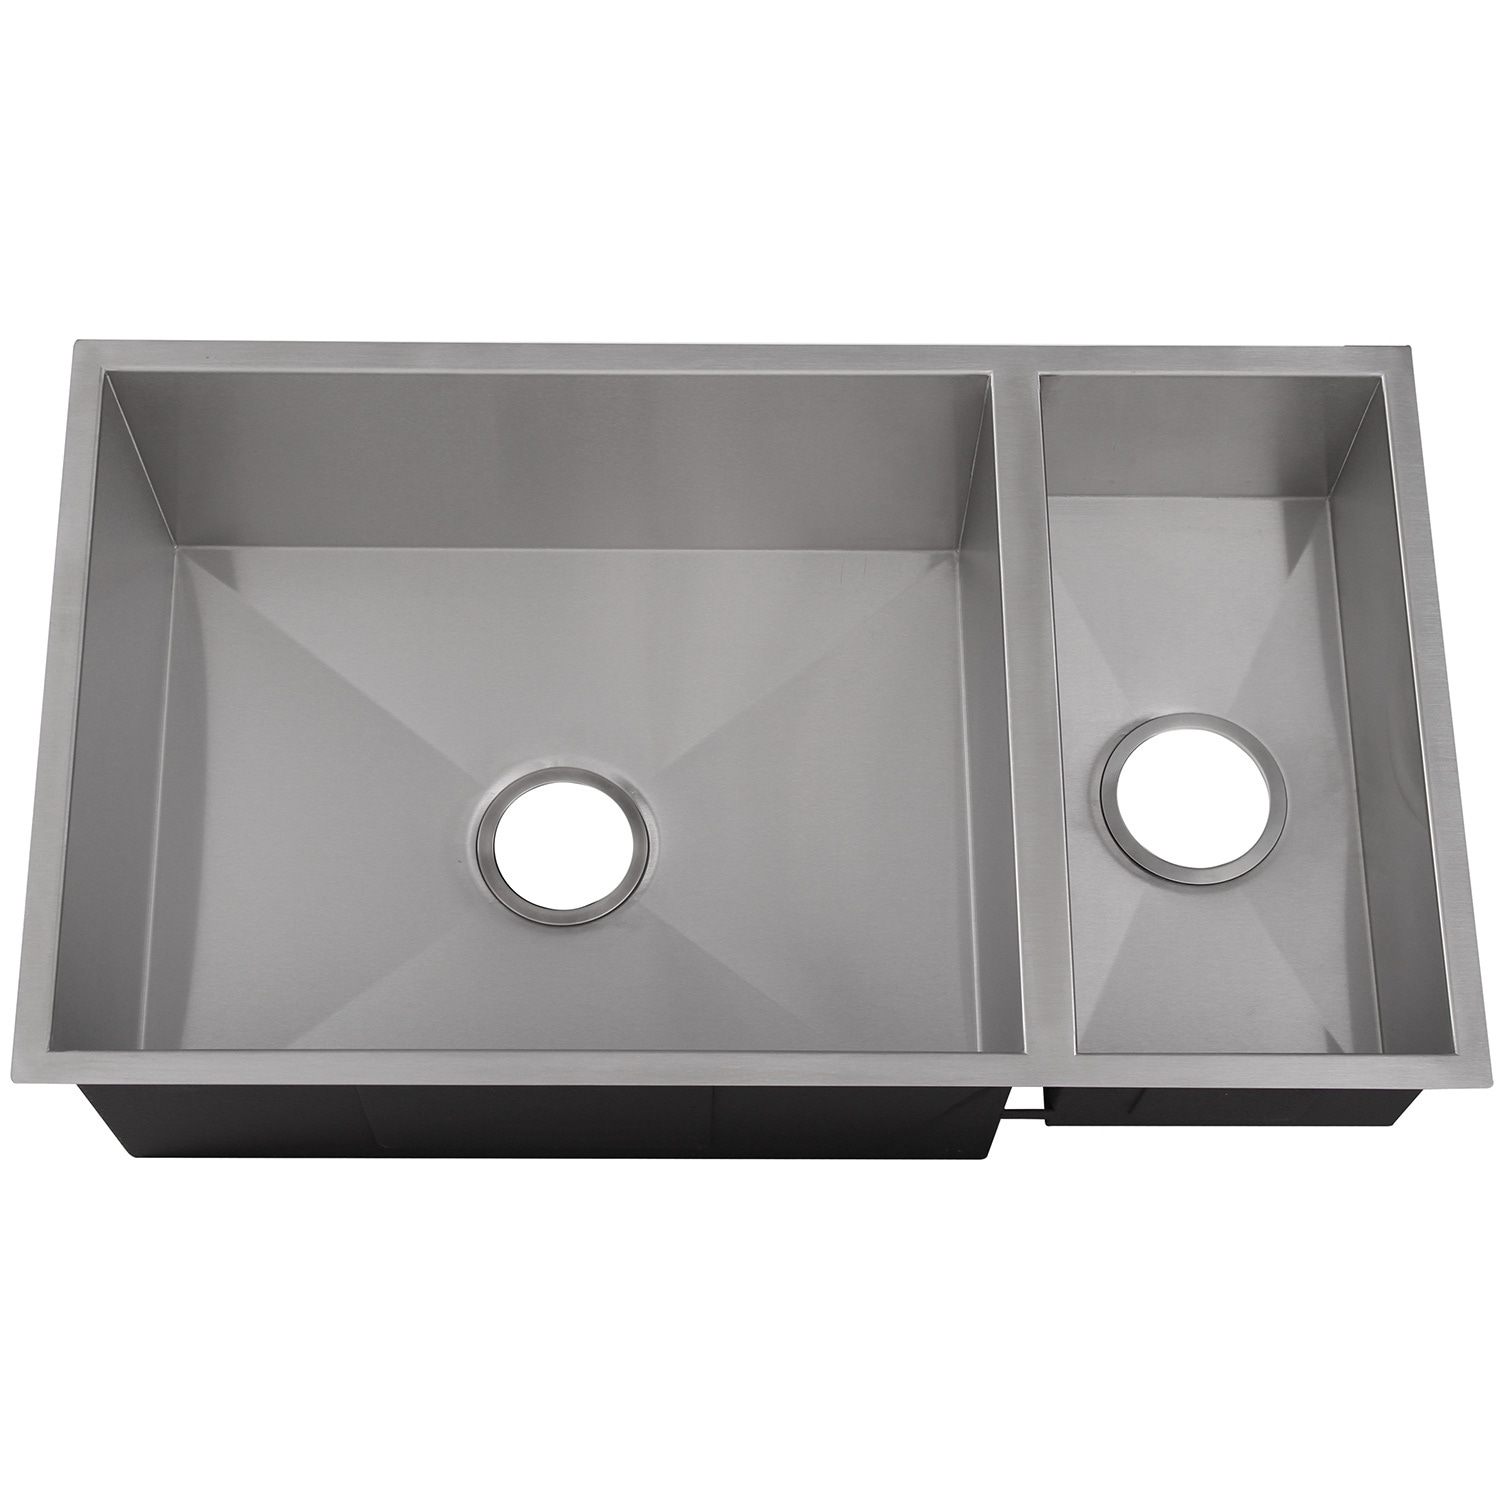 Ticor 32 inch 16 gauge stainless steel double bowl undermount square ticor 32 inch 16 gauge stainless steel double bowl undermount square kitchen sink free shipping today overstock 16191420 workwithnaturefo